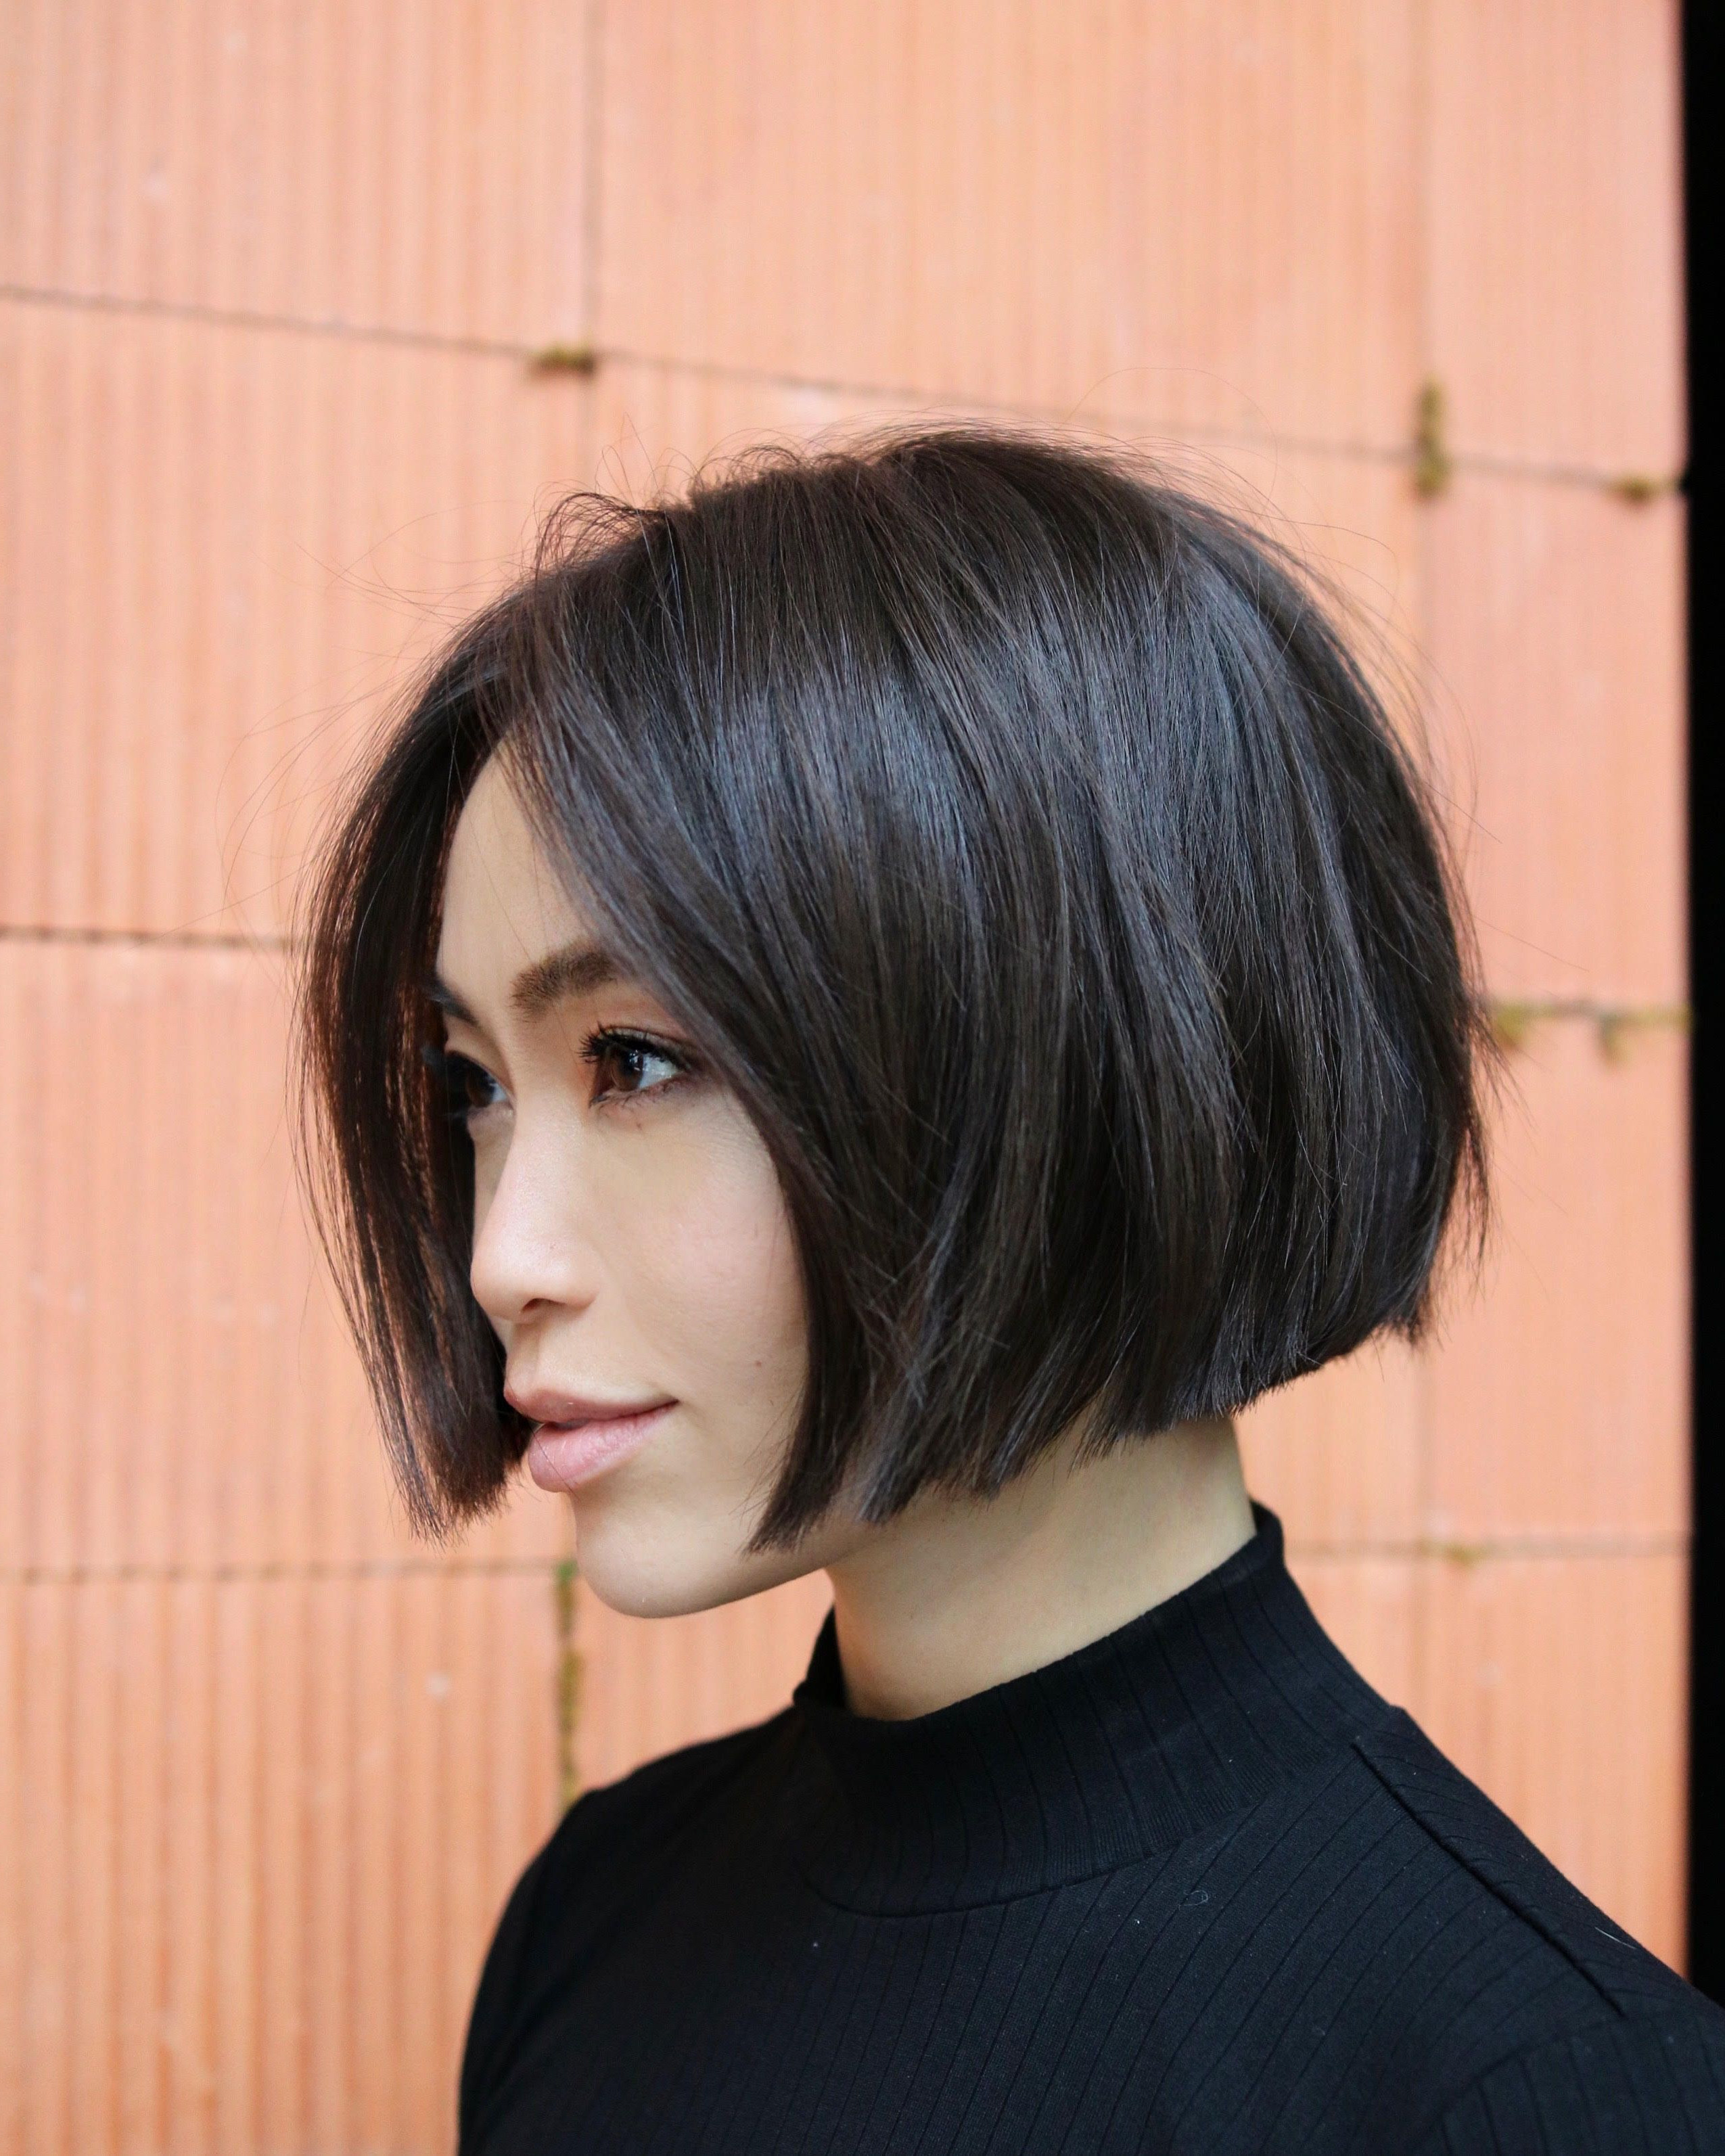 Well Known Long Choppy Haircuts With A Sprinkling Of Layers In Trendy Spring Haircut Ideas To Inspire Fresh 2019 Look (View 13 of 20)